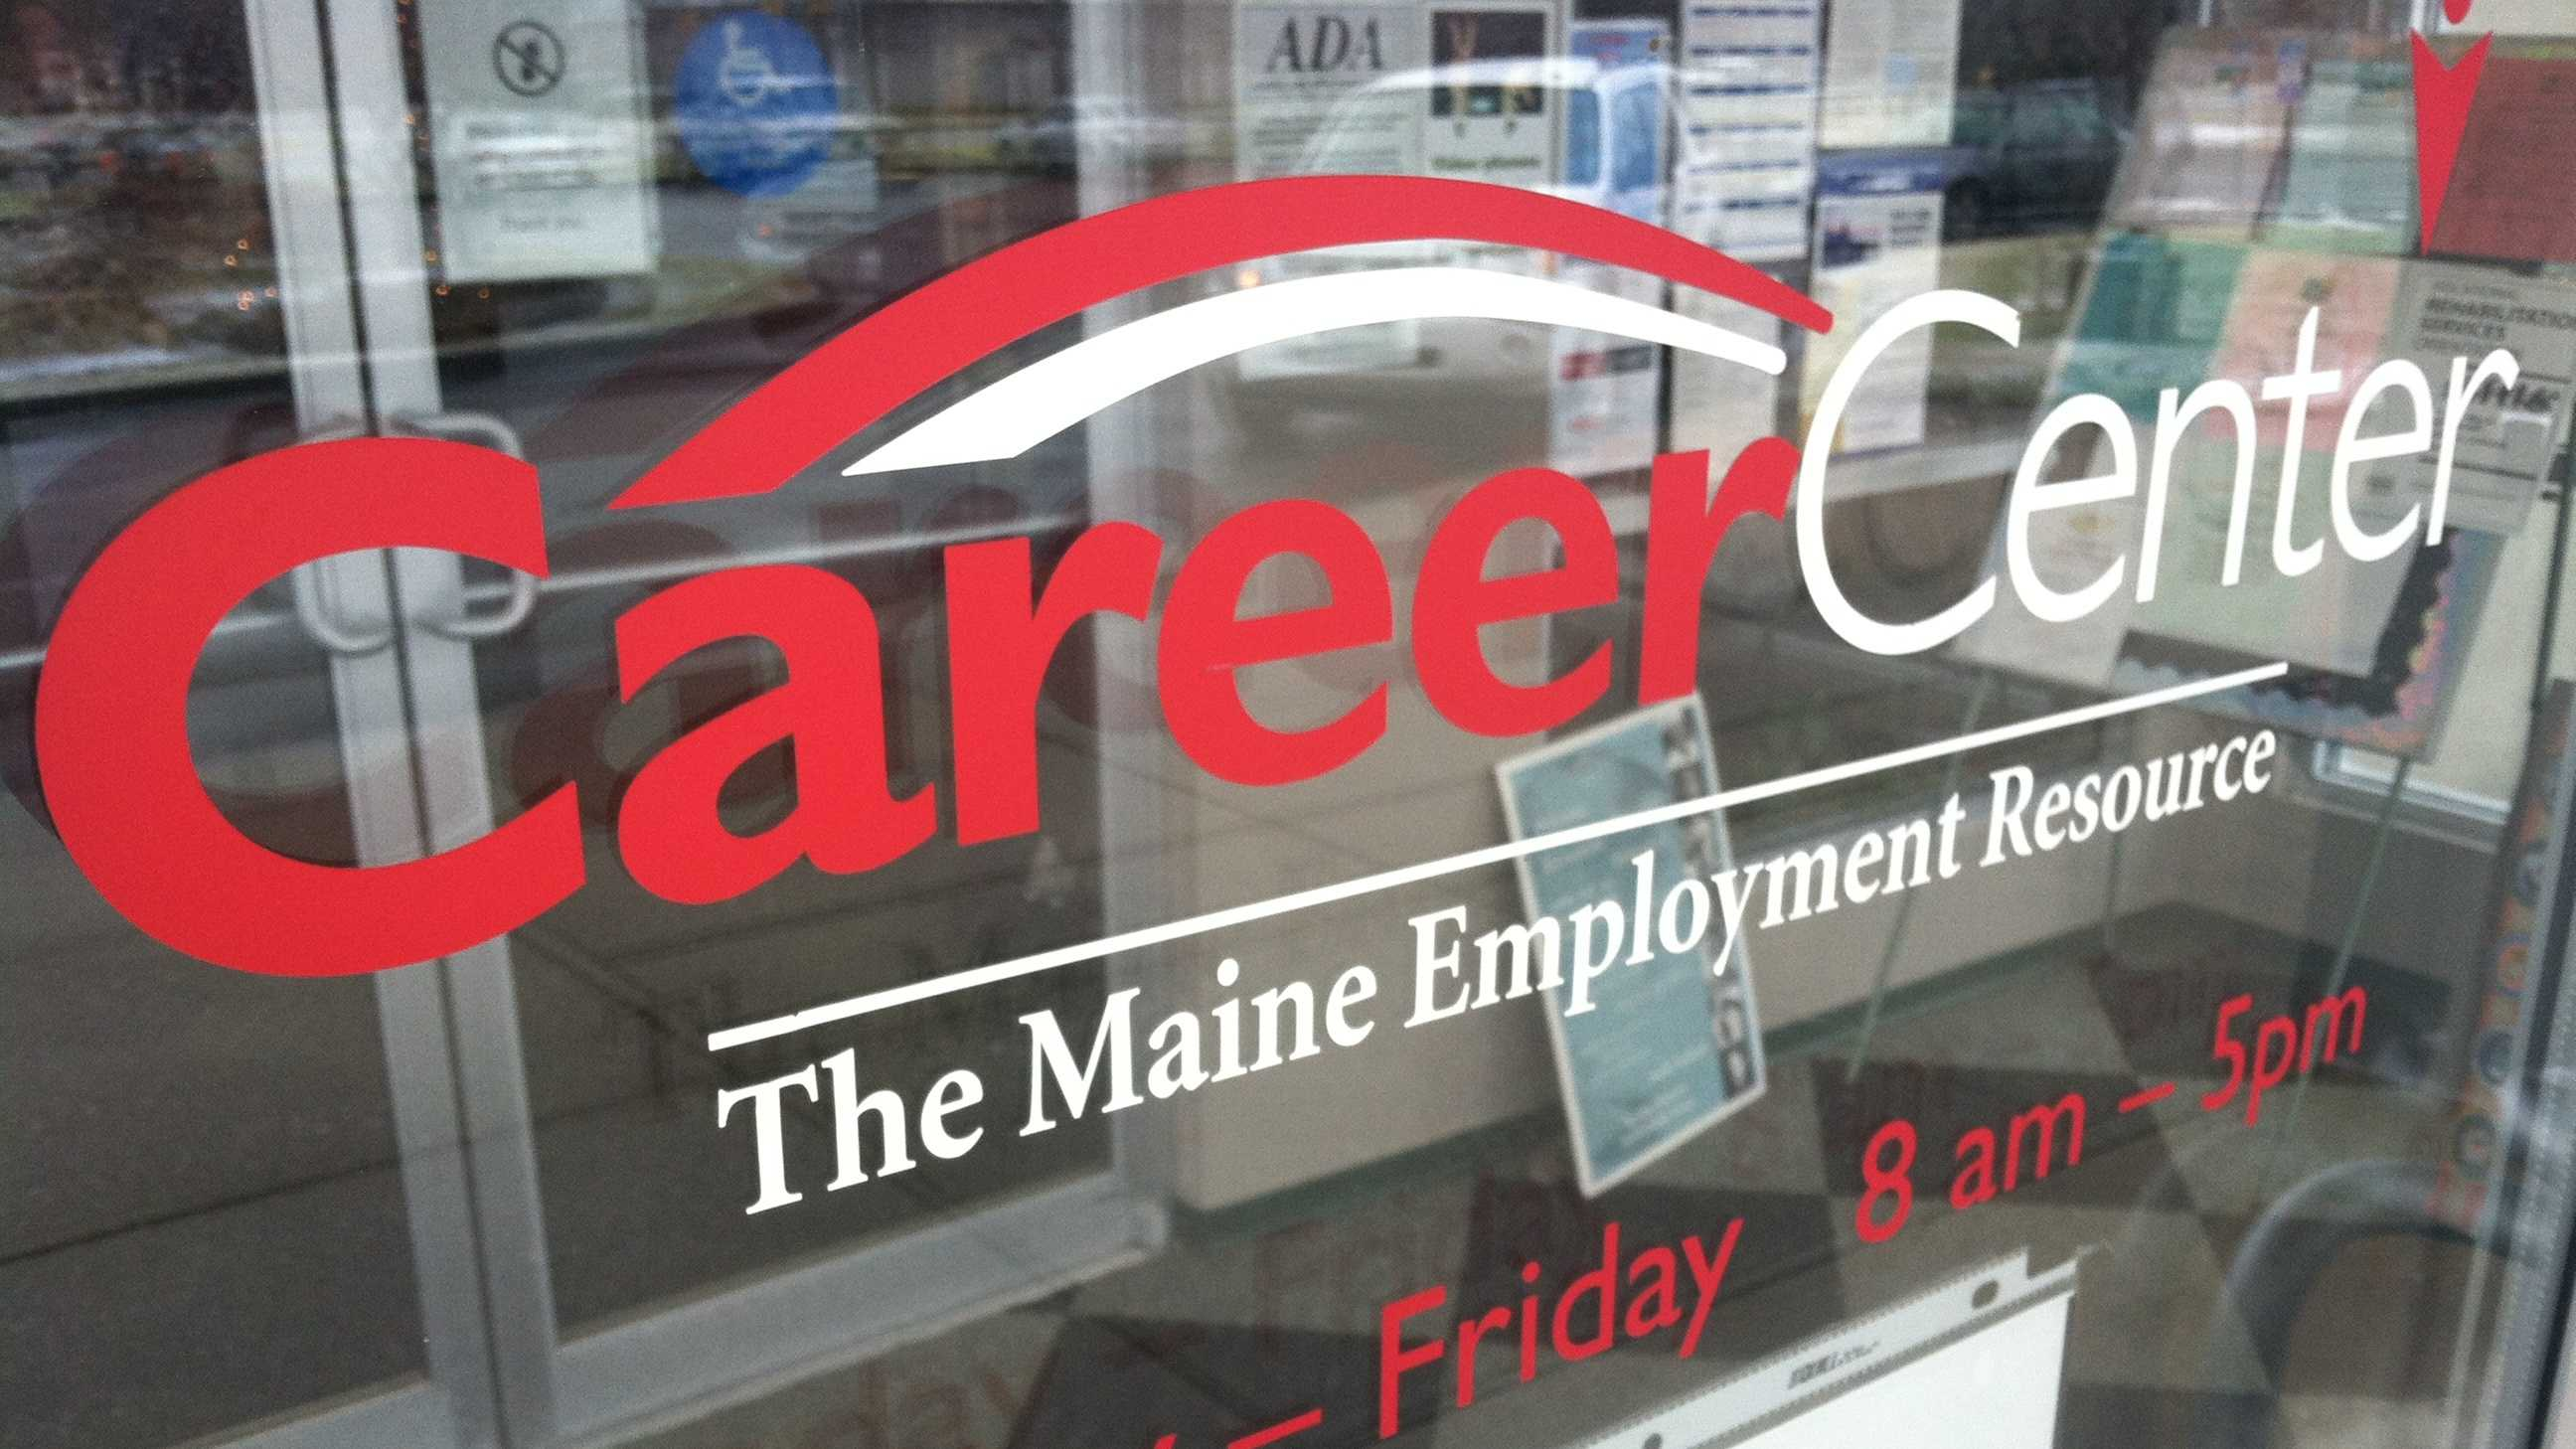 Career Center Sign